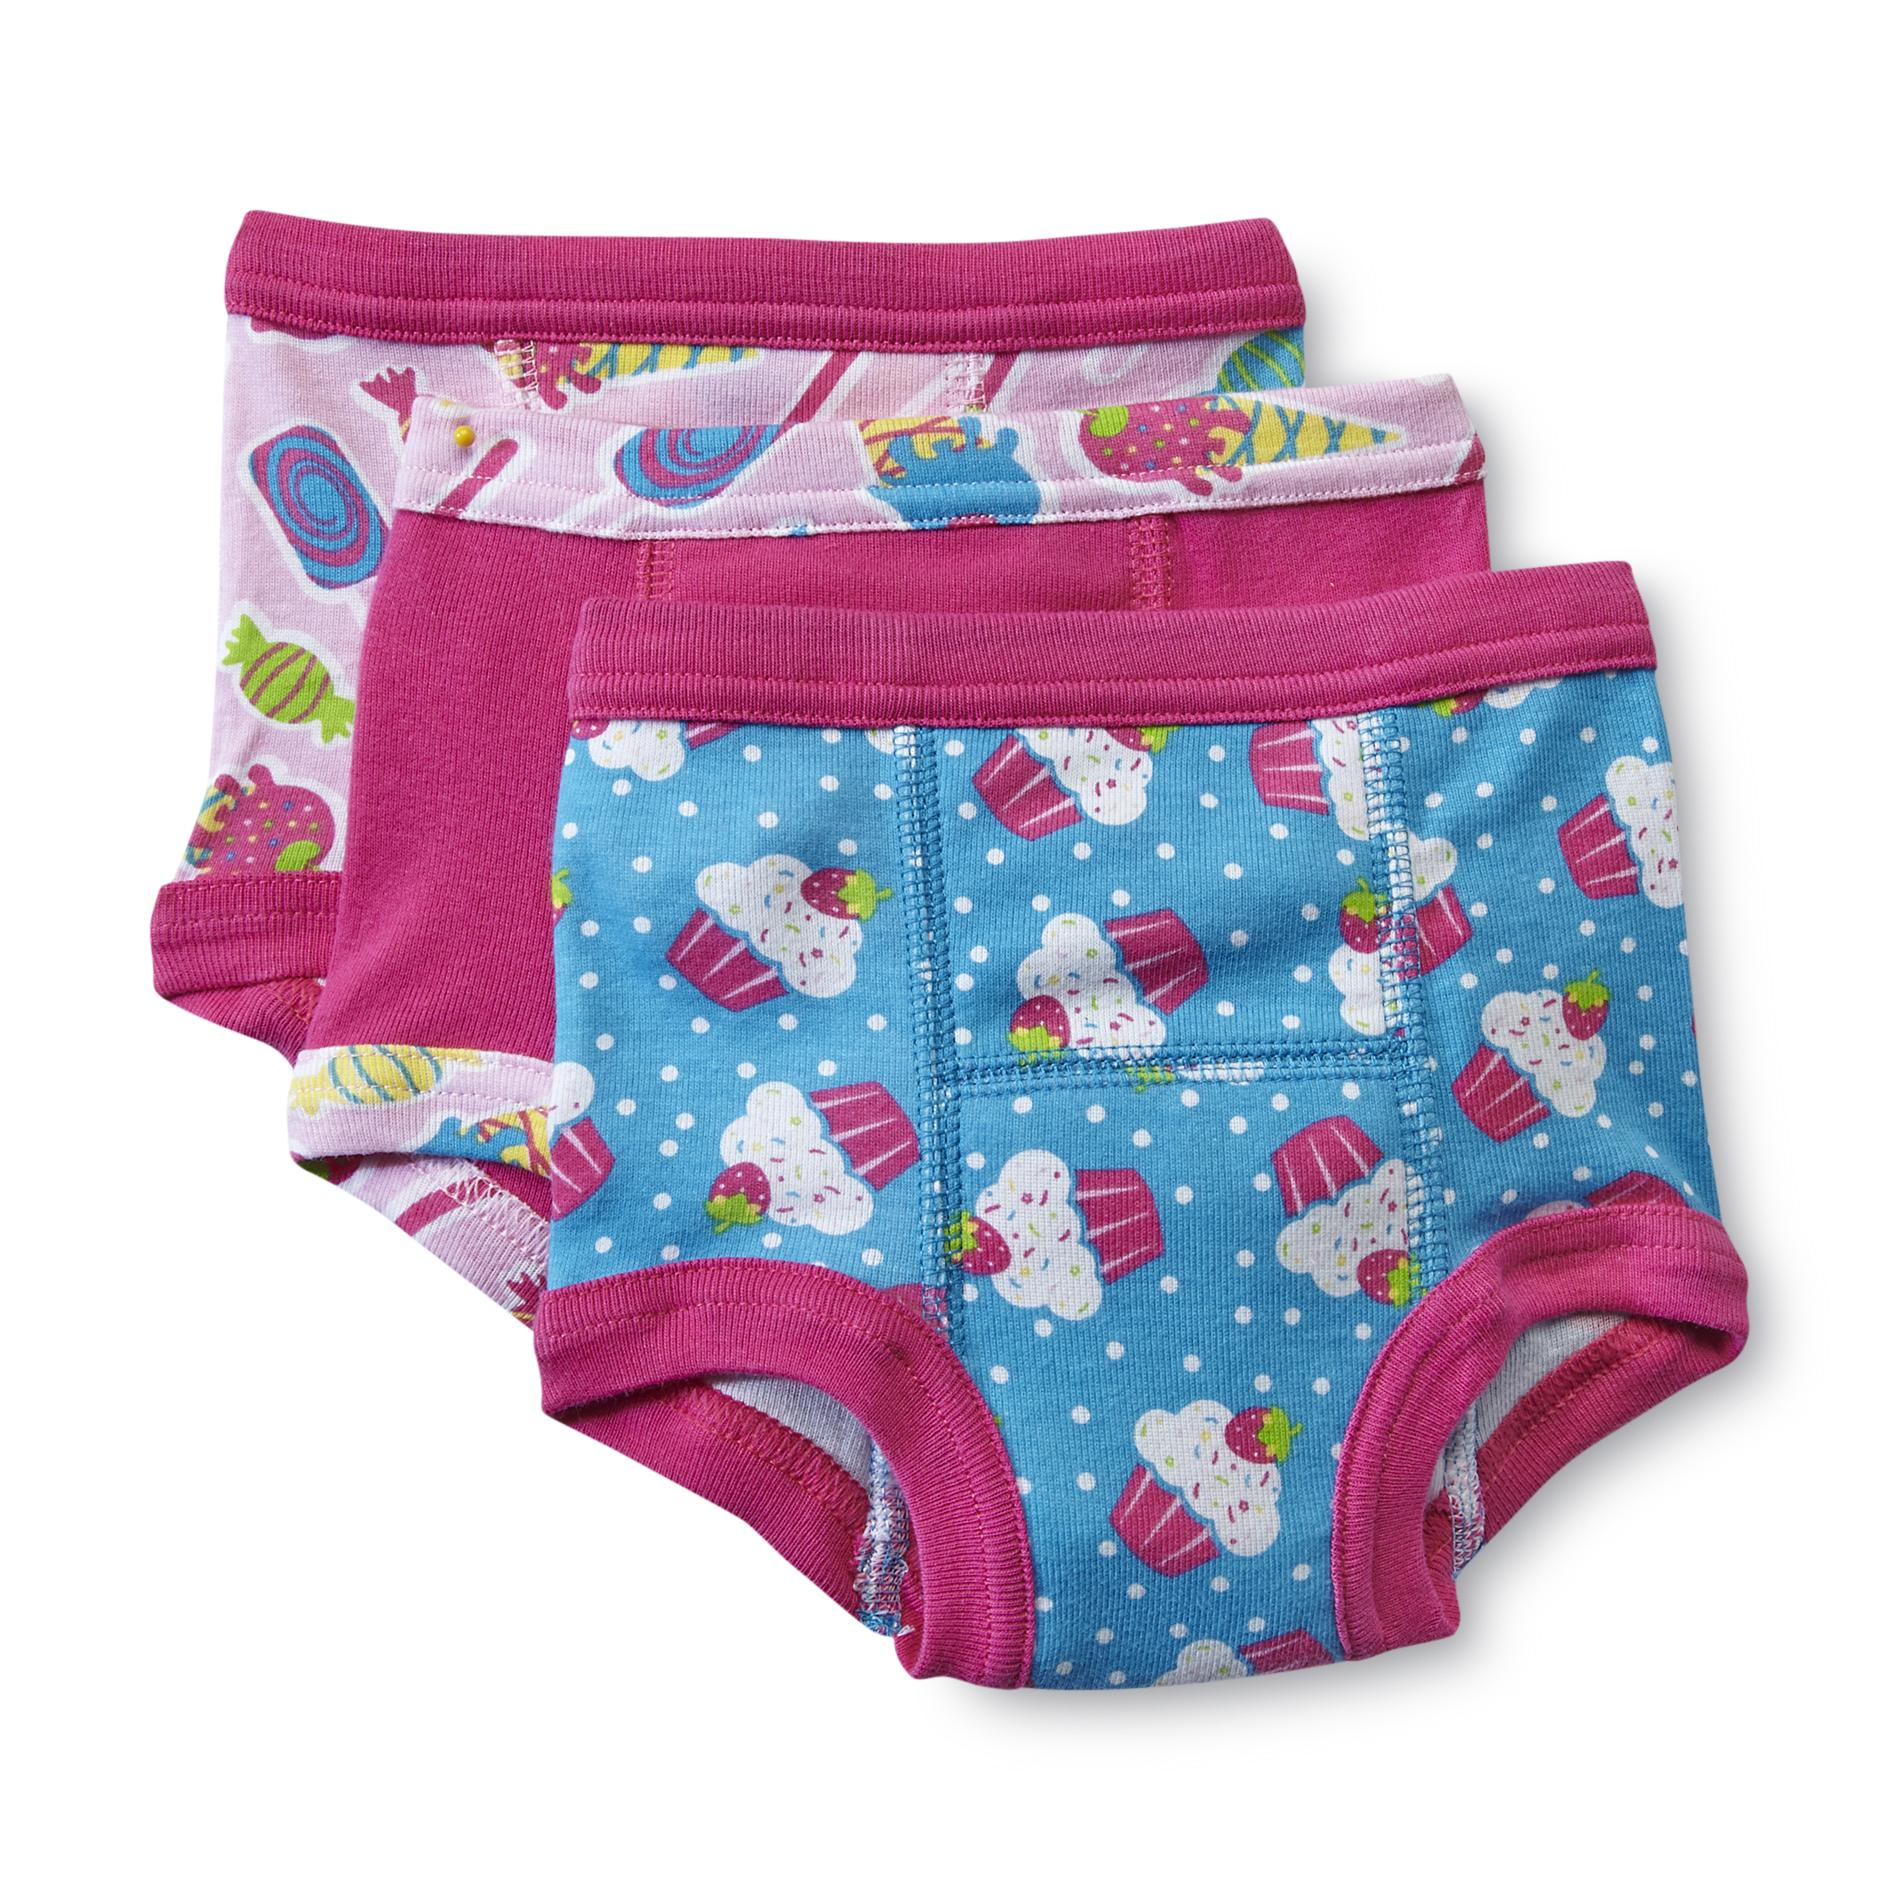 Joe Boxer Toddler Girl' 3-pack Training Pants - Cupcake Print